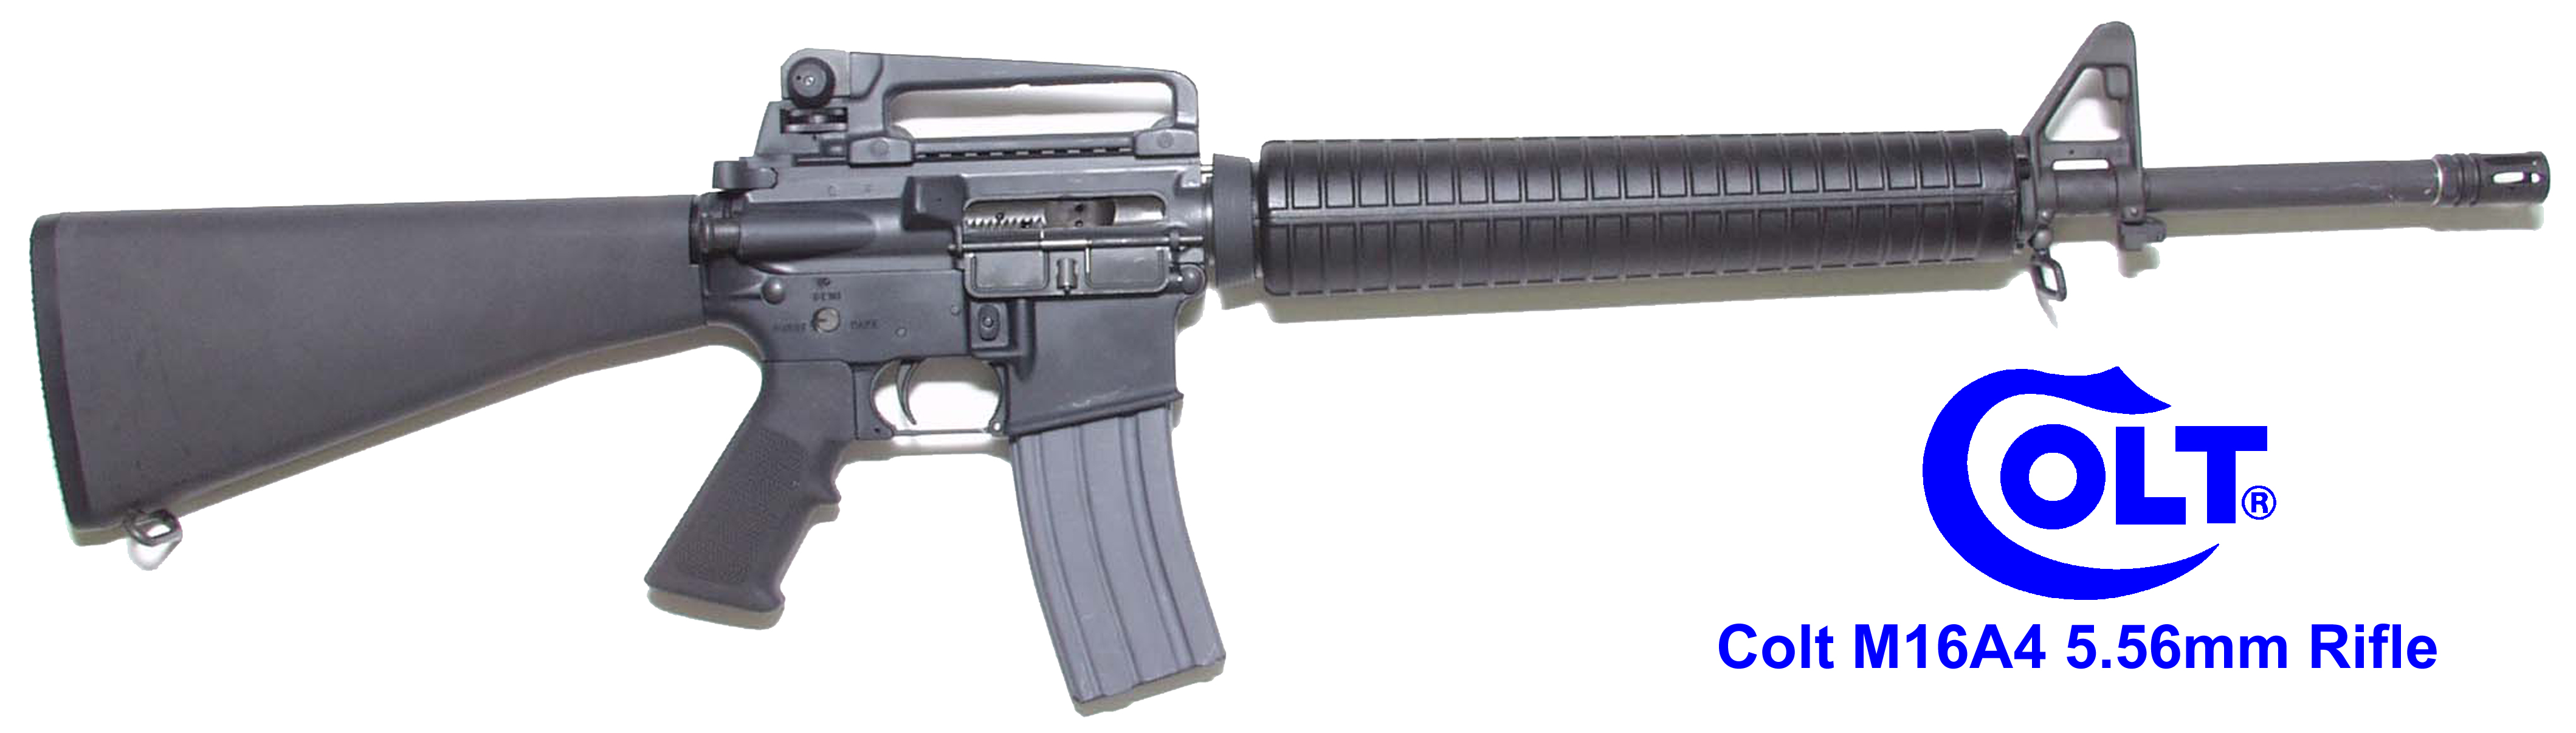 Ar 15 Maintenance And Repair Five Tips From Armorer S School Active Response Training